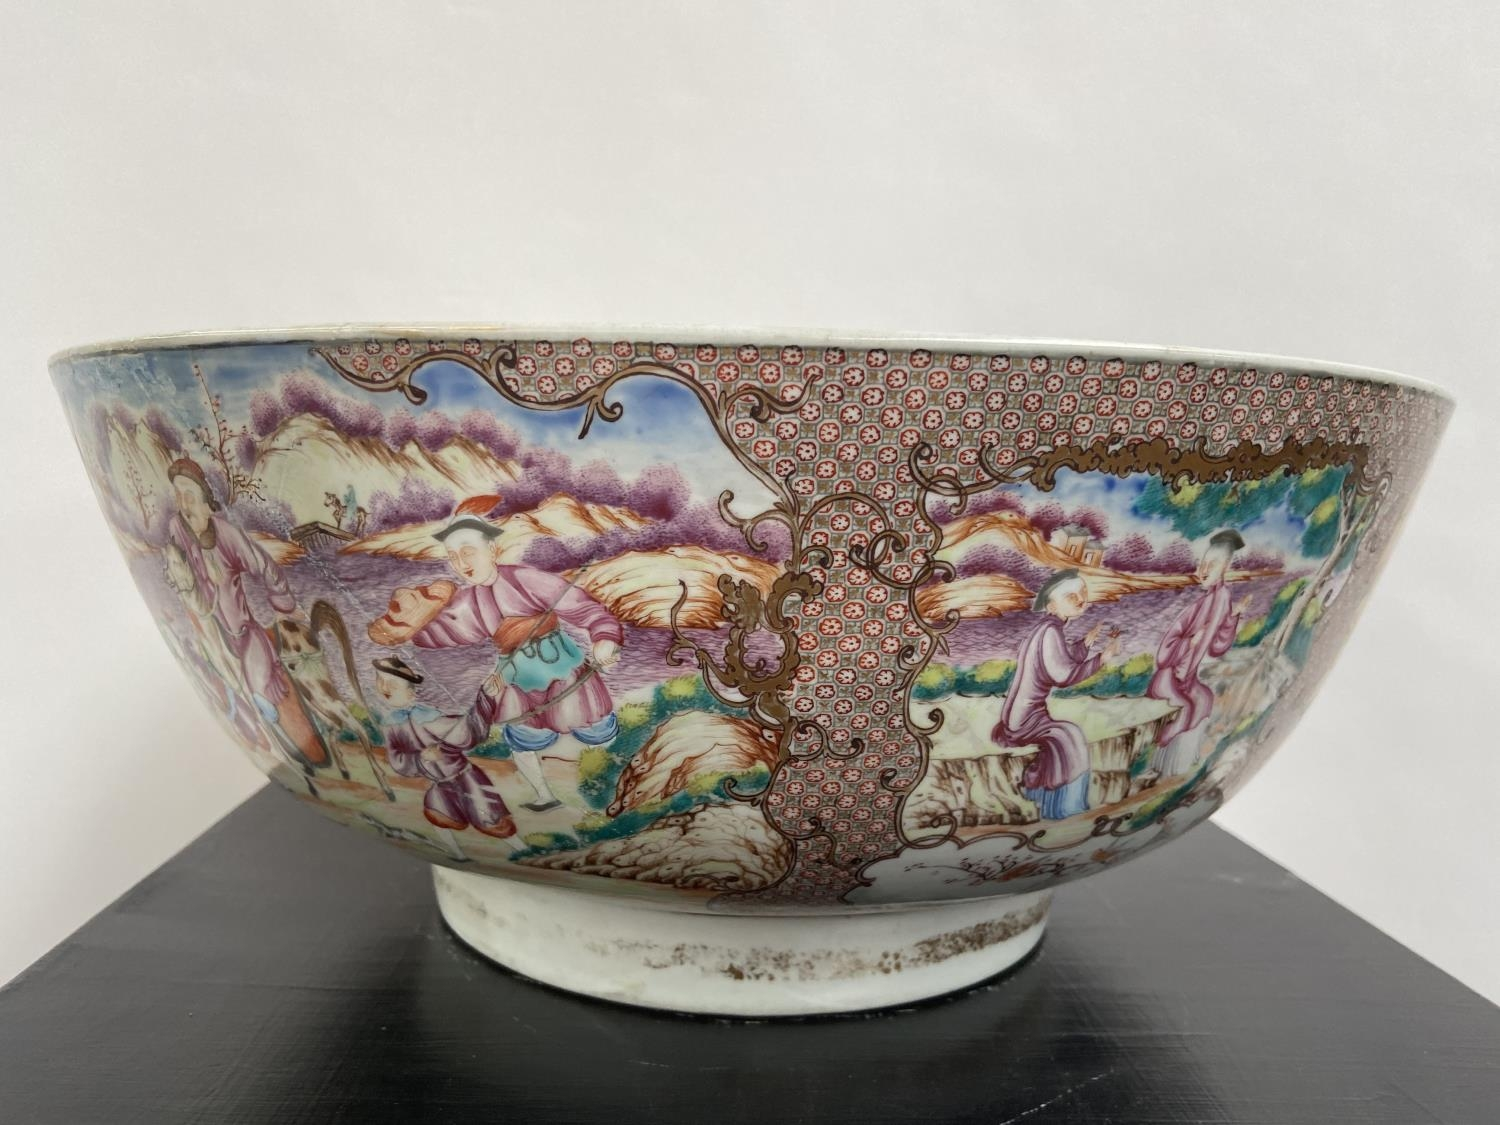 A LARGE 19TH CENTURY CHINESE HAND PAINTED BOWL. EXTERIOR DEPICTS CHINESE HUNTING SCENE PANELS. THE - Image 29 of 39